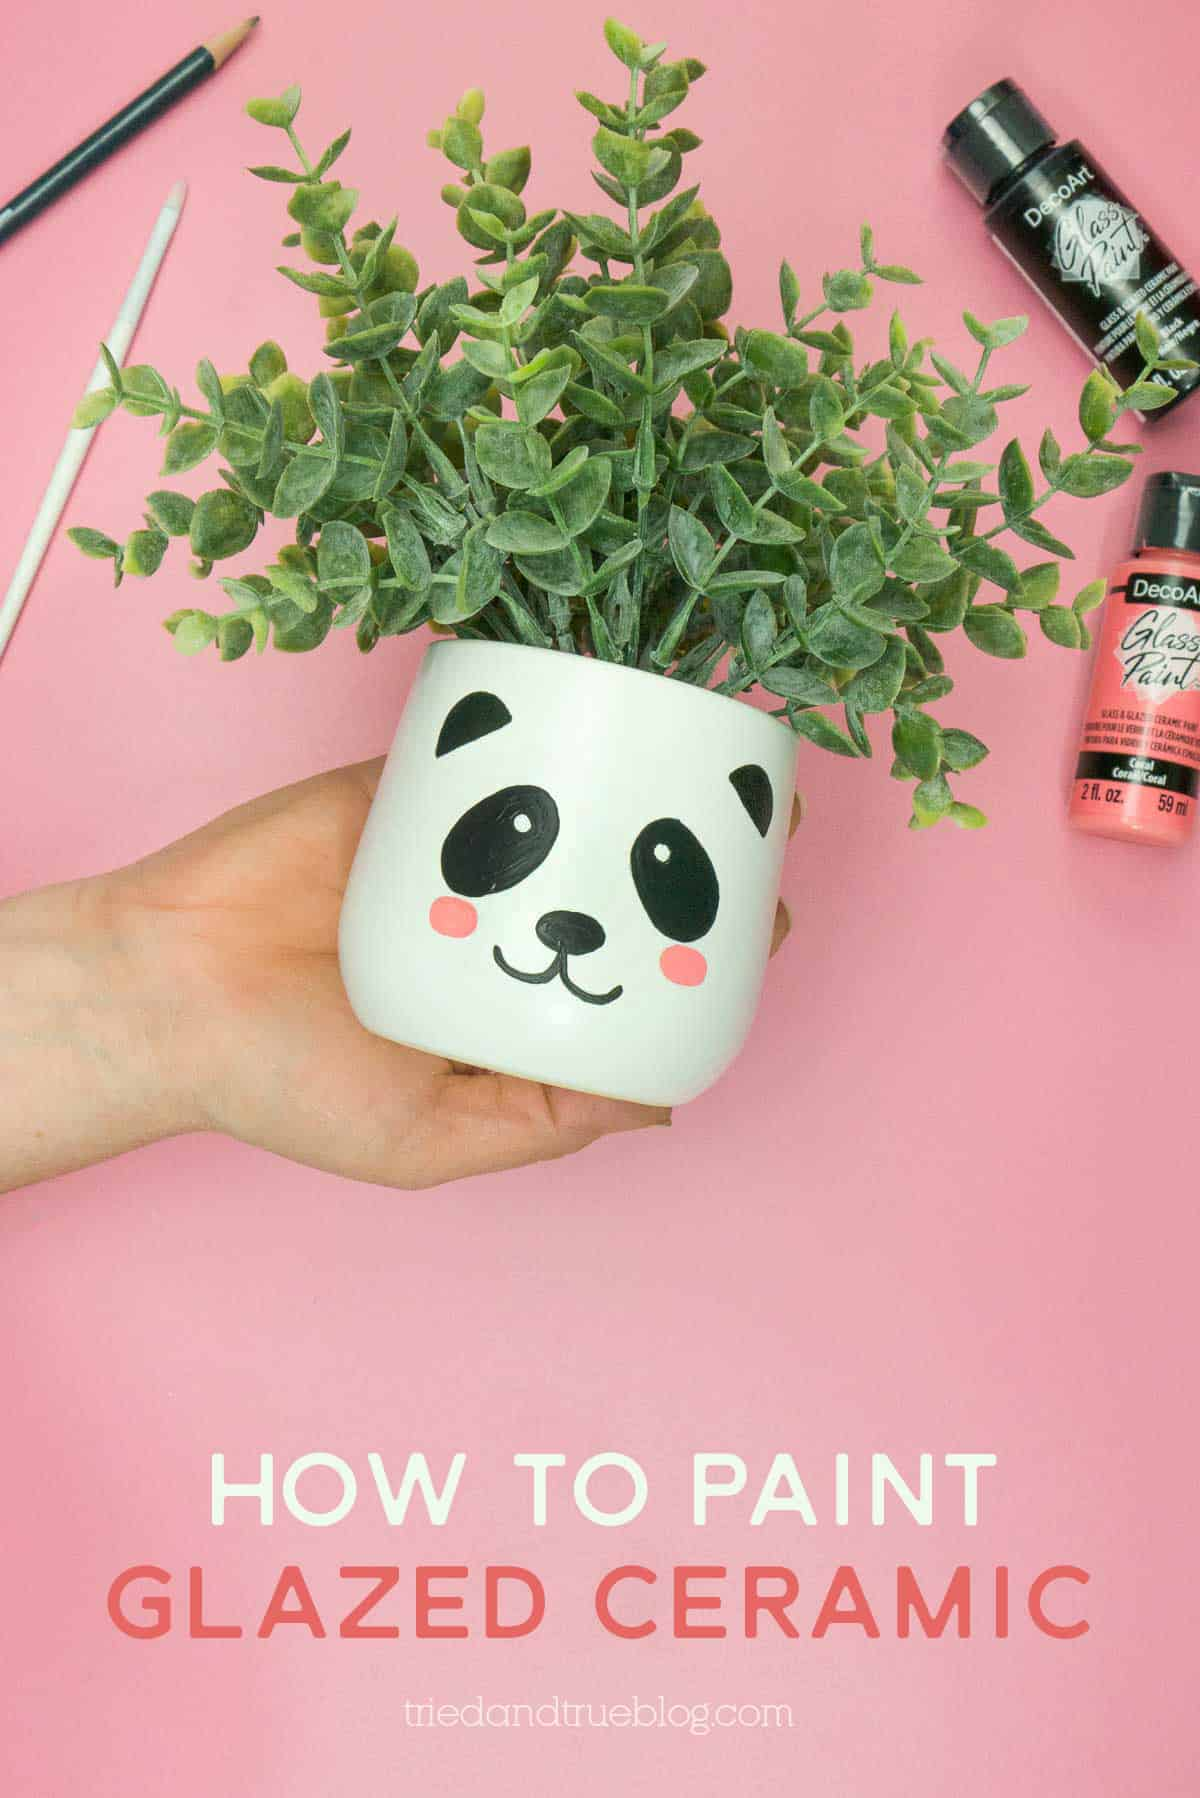 Hand holding white planter with painted panda face. Words include